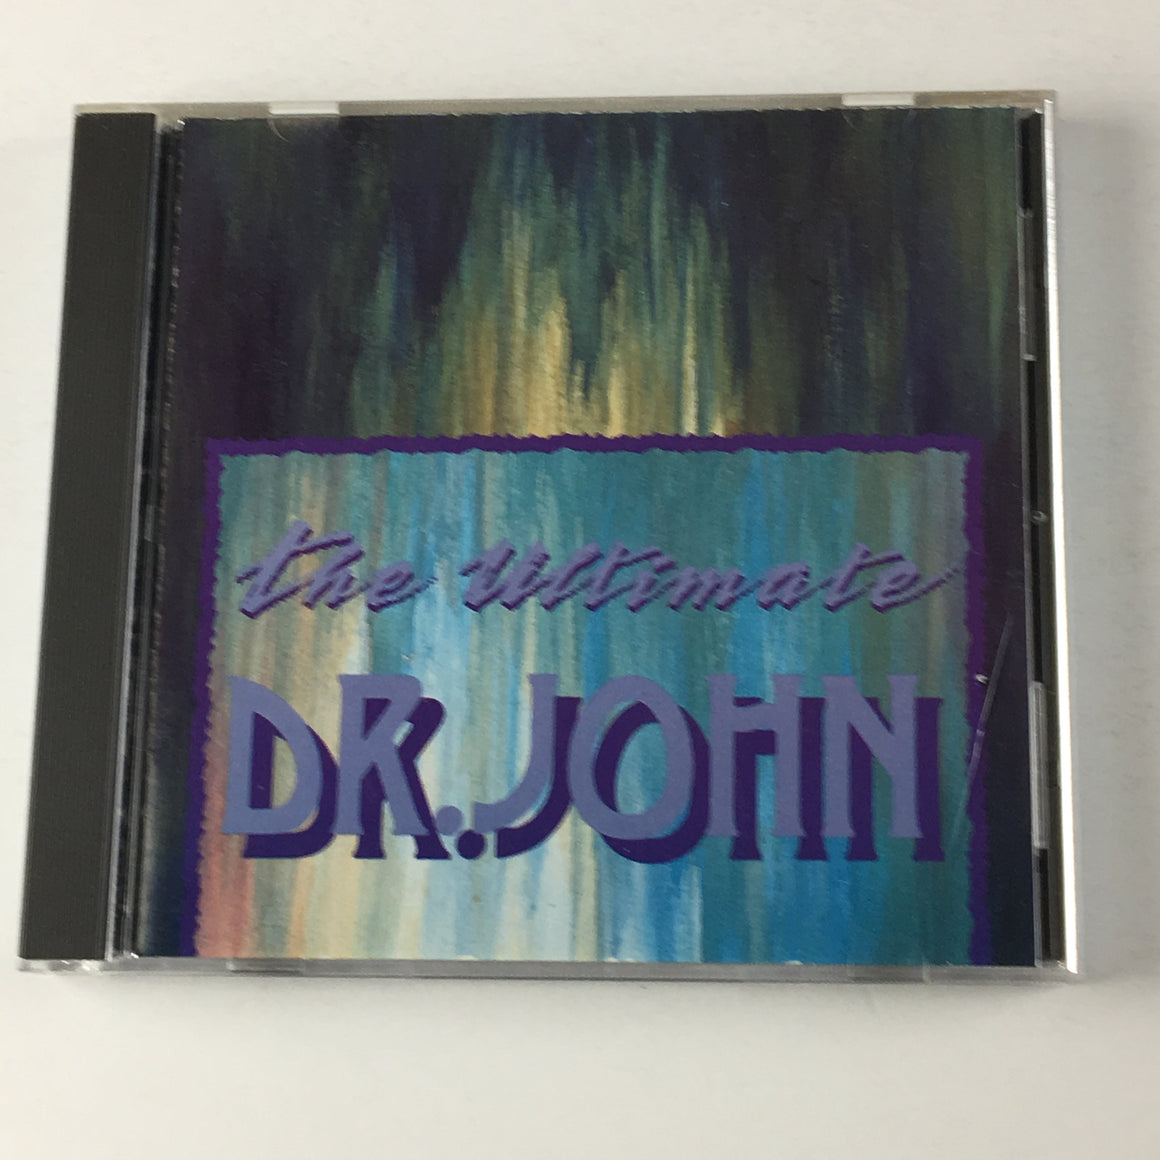 Dr. John The Ultimate Dr. John Used CD VG+ 9-27612-2